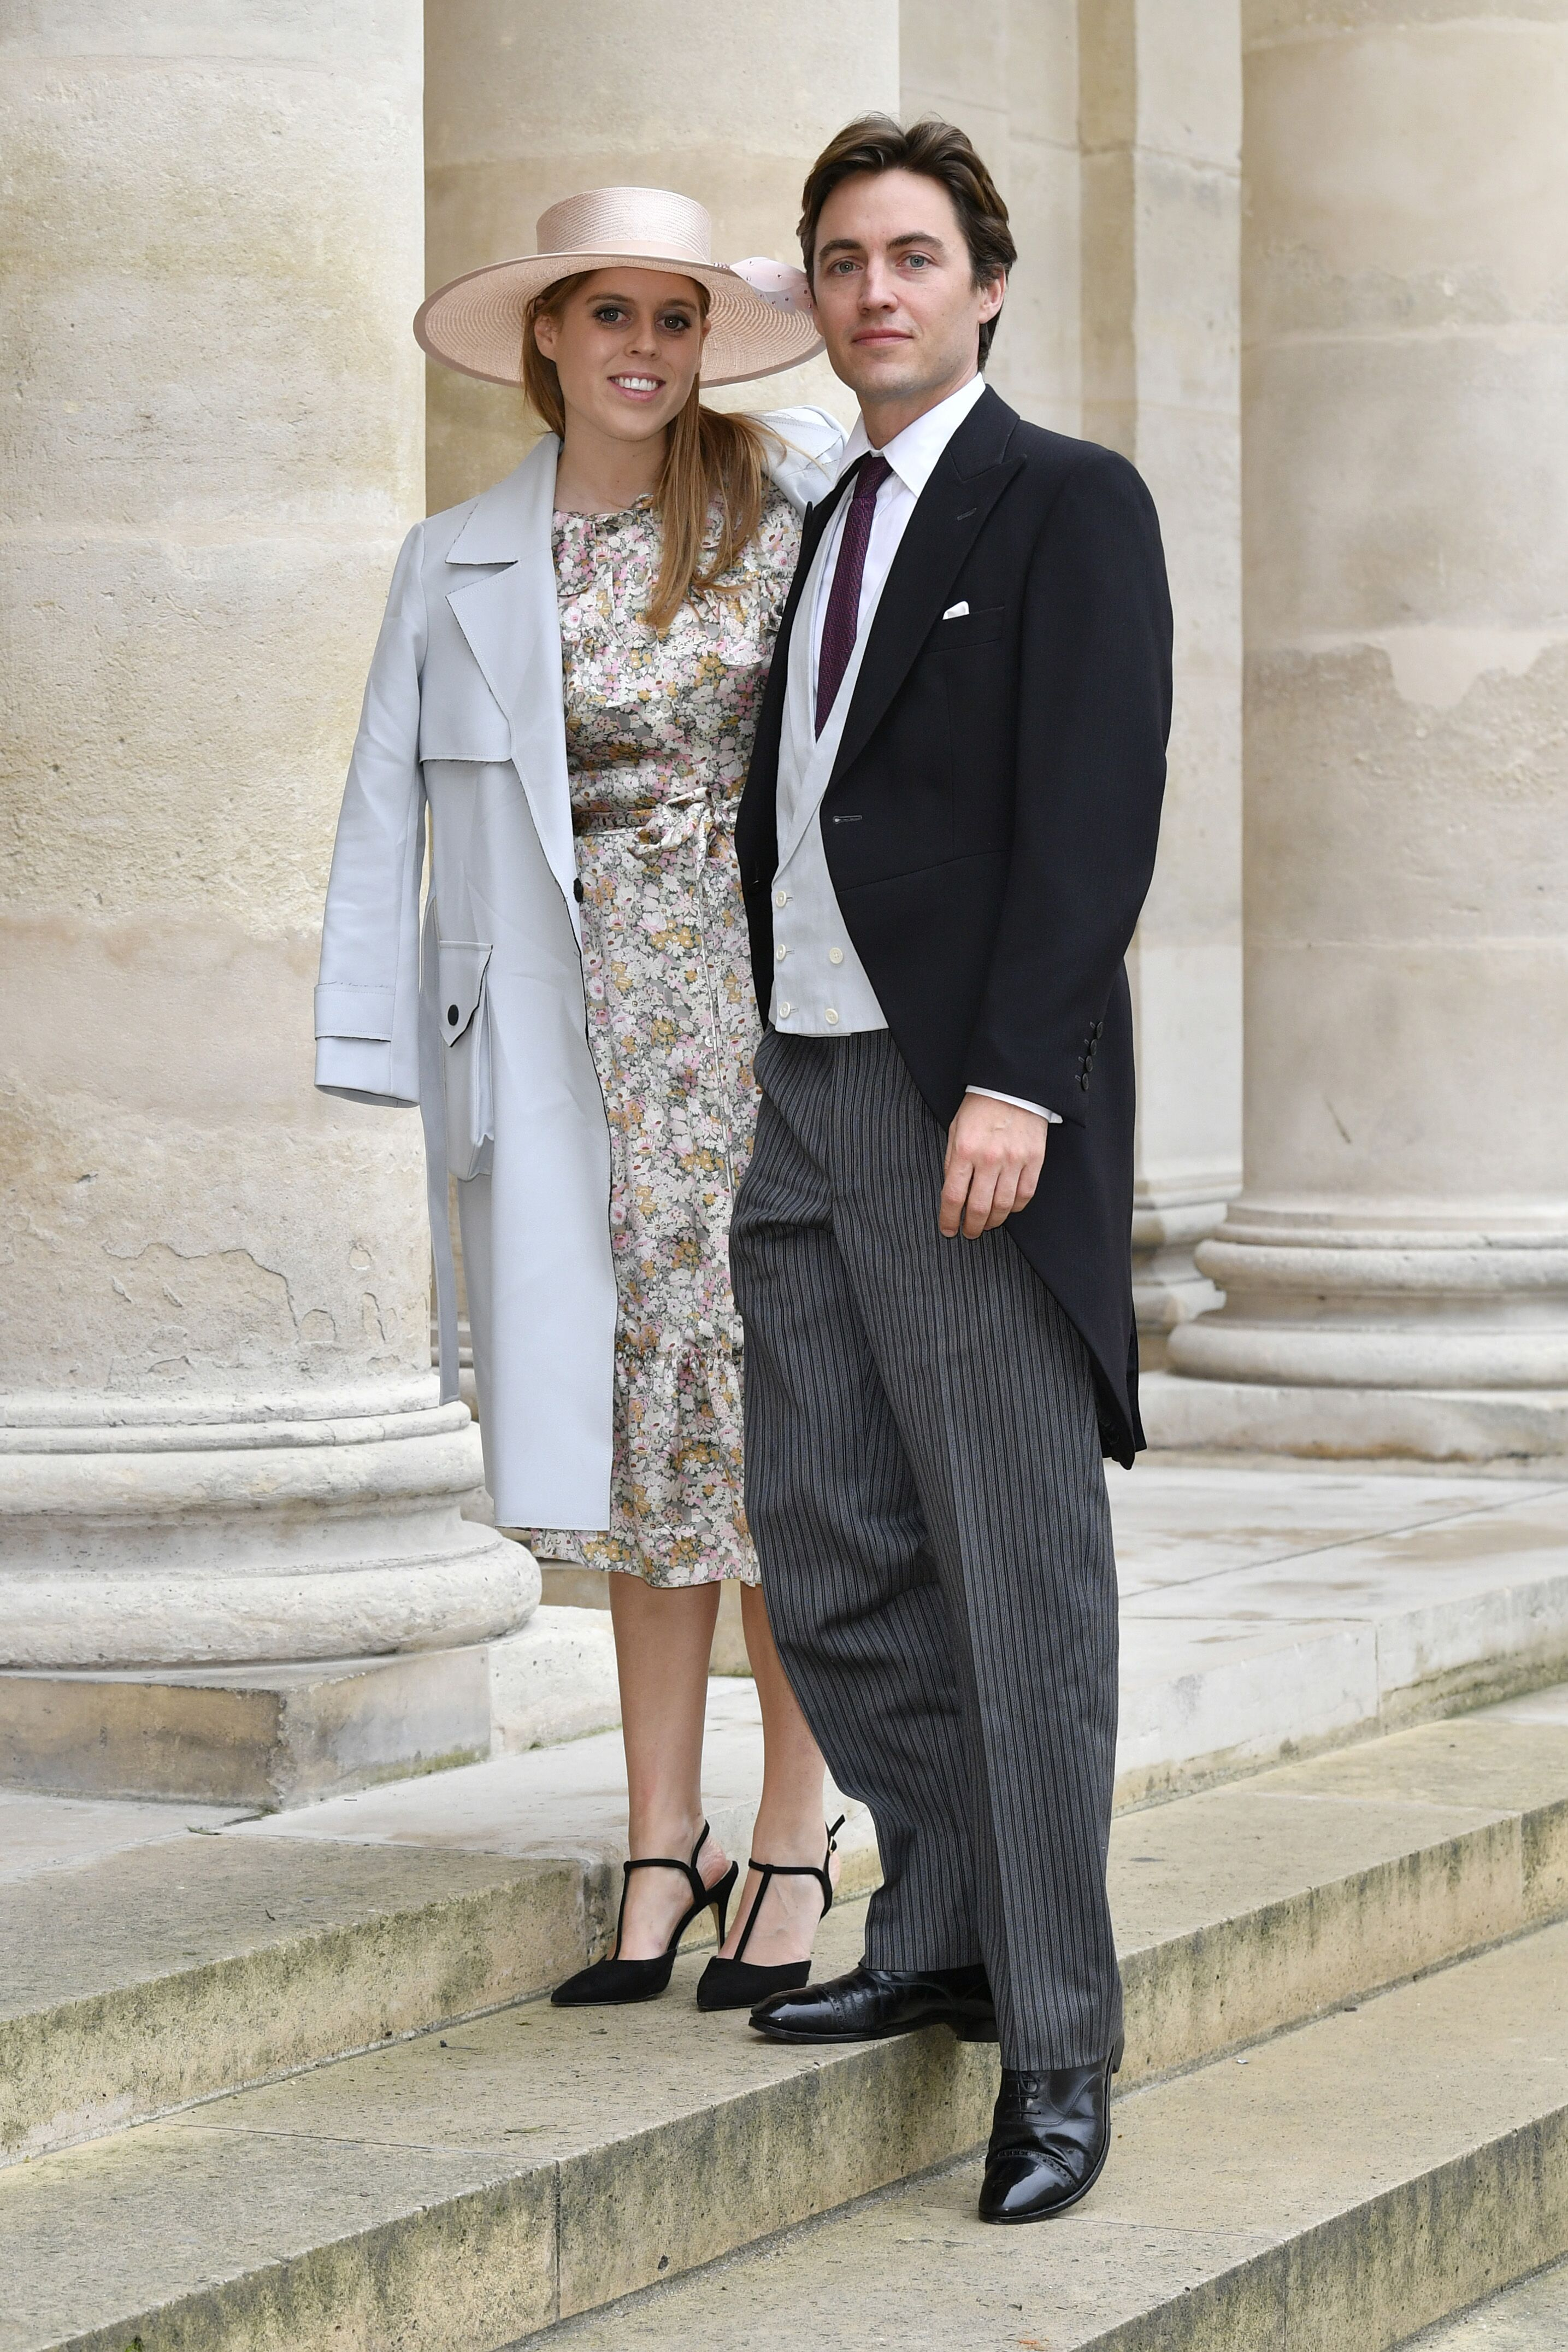 Princess Beatrice d'York and her fiance Edoardo Mapelli Mozzi attend the Wedding of Prince Jean-Christophe Napoleon and Olympia Von Arco-Zinneberg at Les Invalides. | Photo: Getty Images